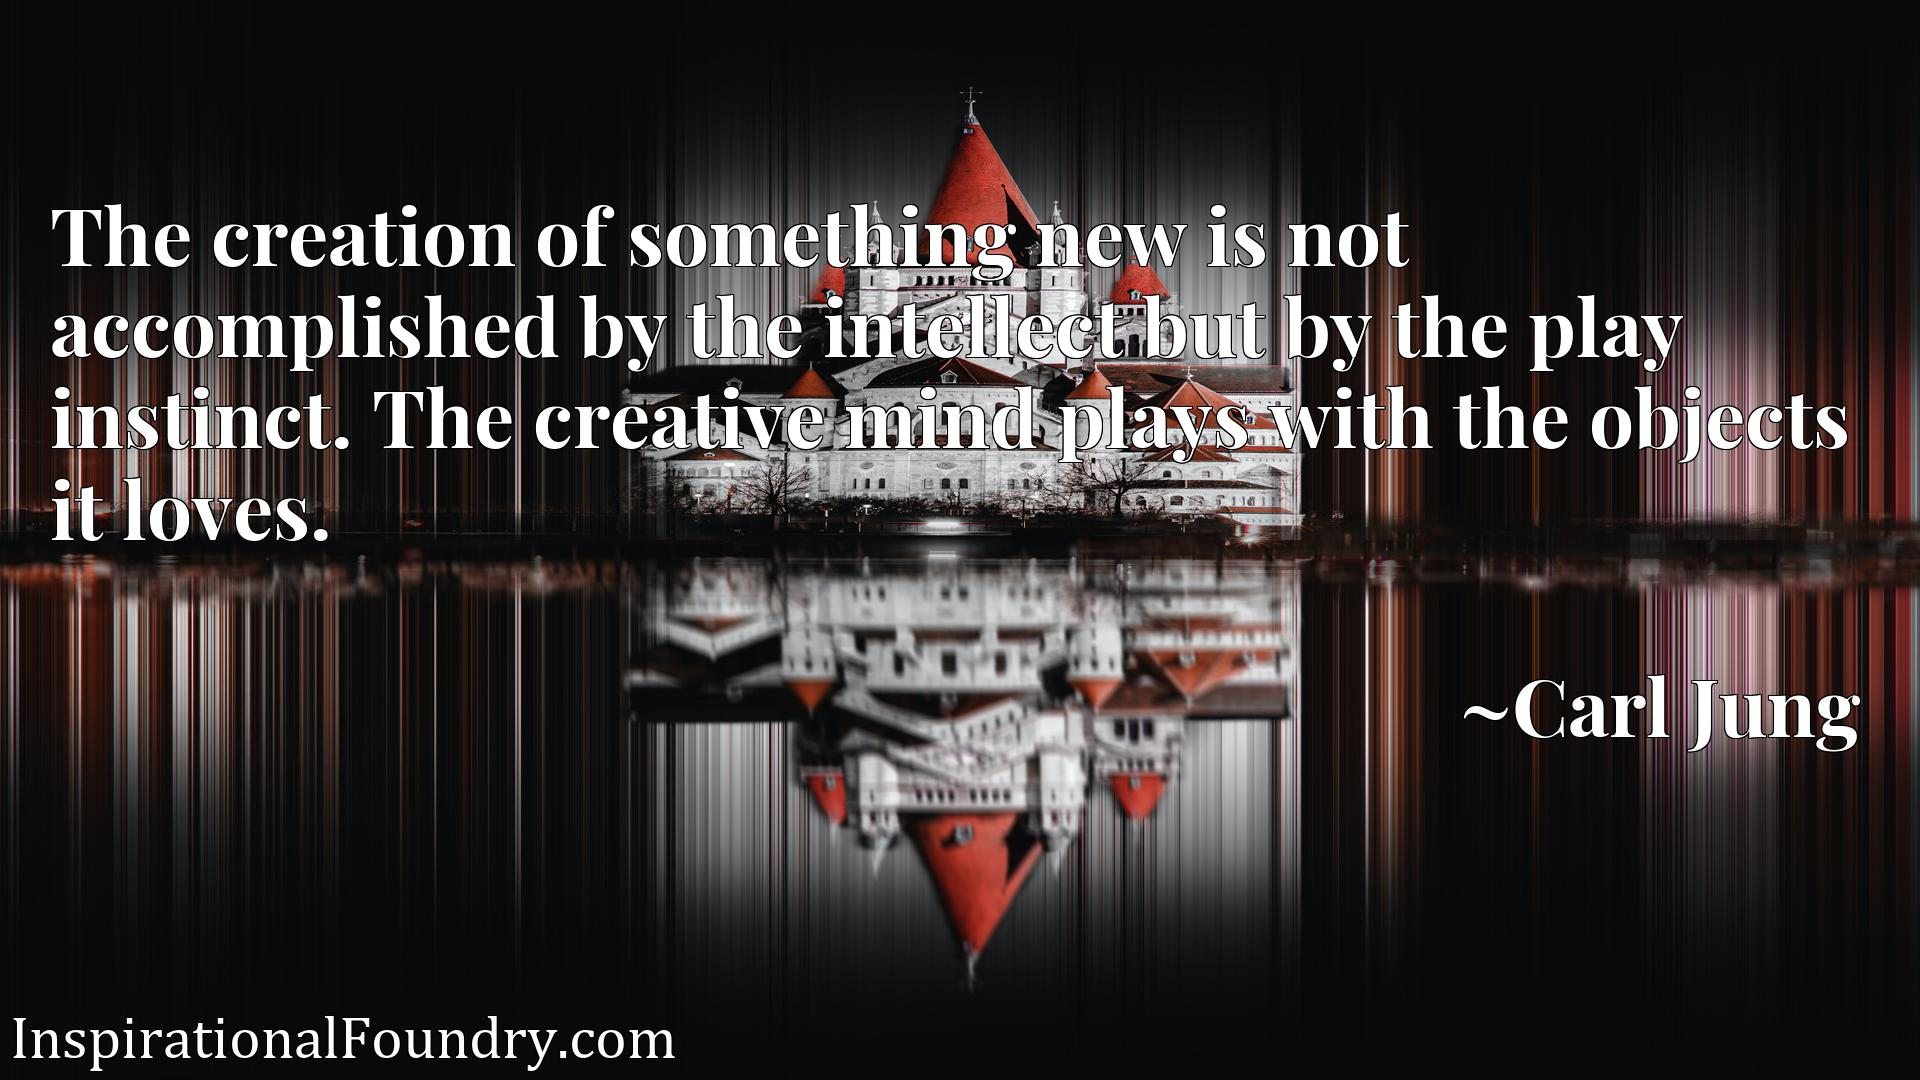 The creation of something new is not accomplished by the intellect but by the play instinct. The creative mind plays with the objects it loves.